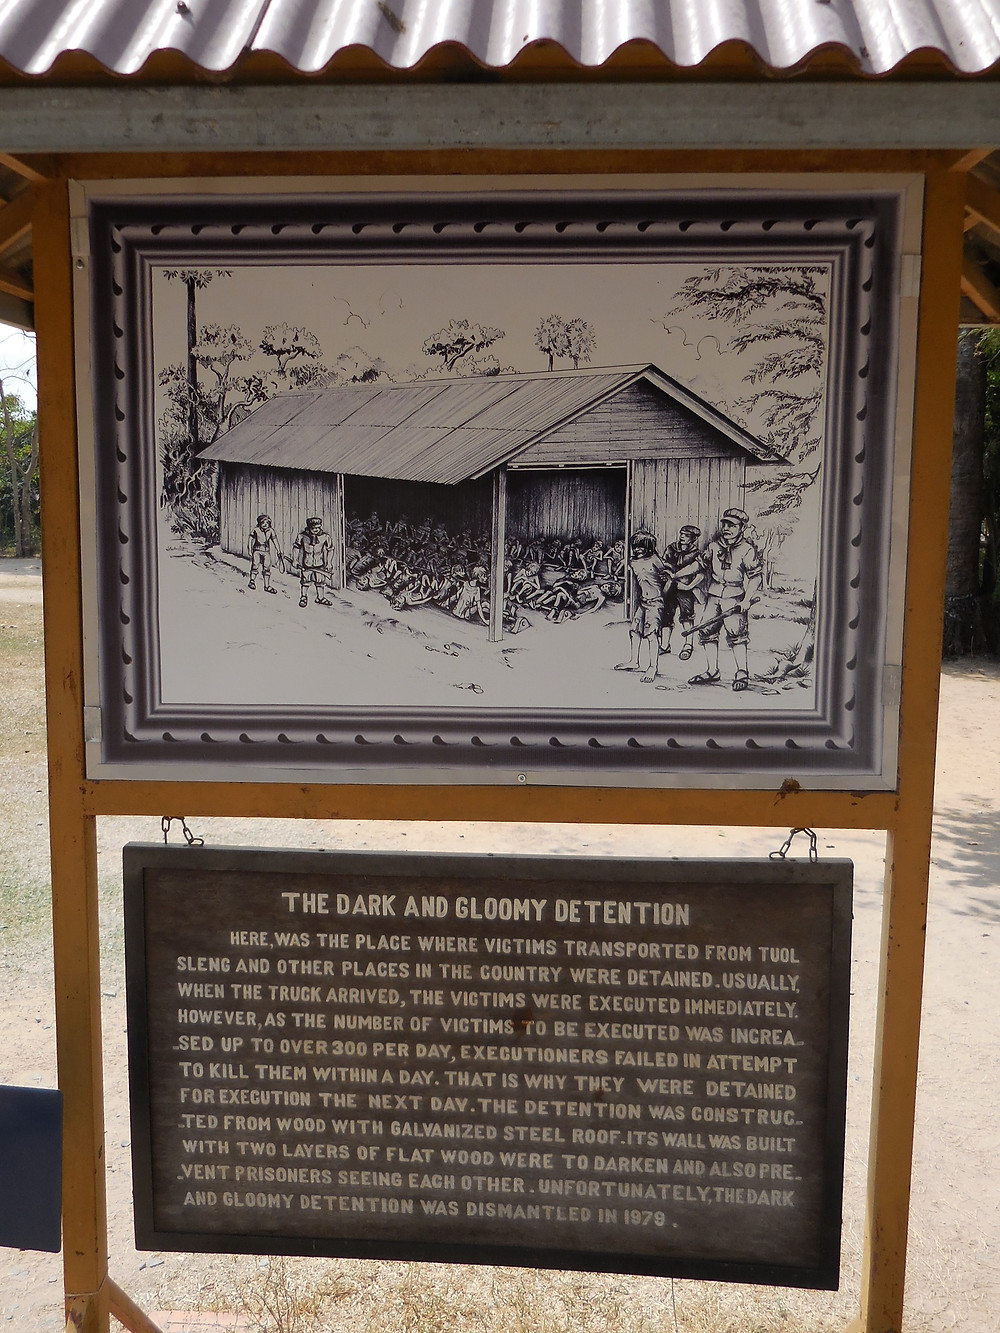 A sketch shows where the prisoners were temporarily detained at Choeung Ek